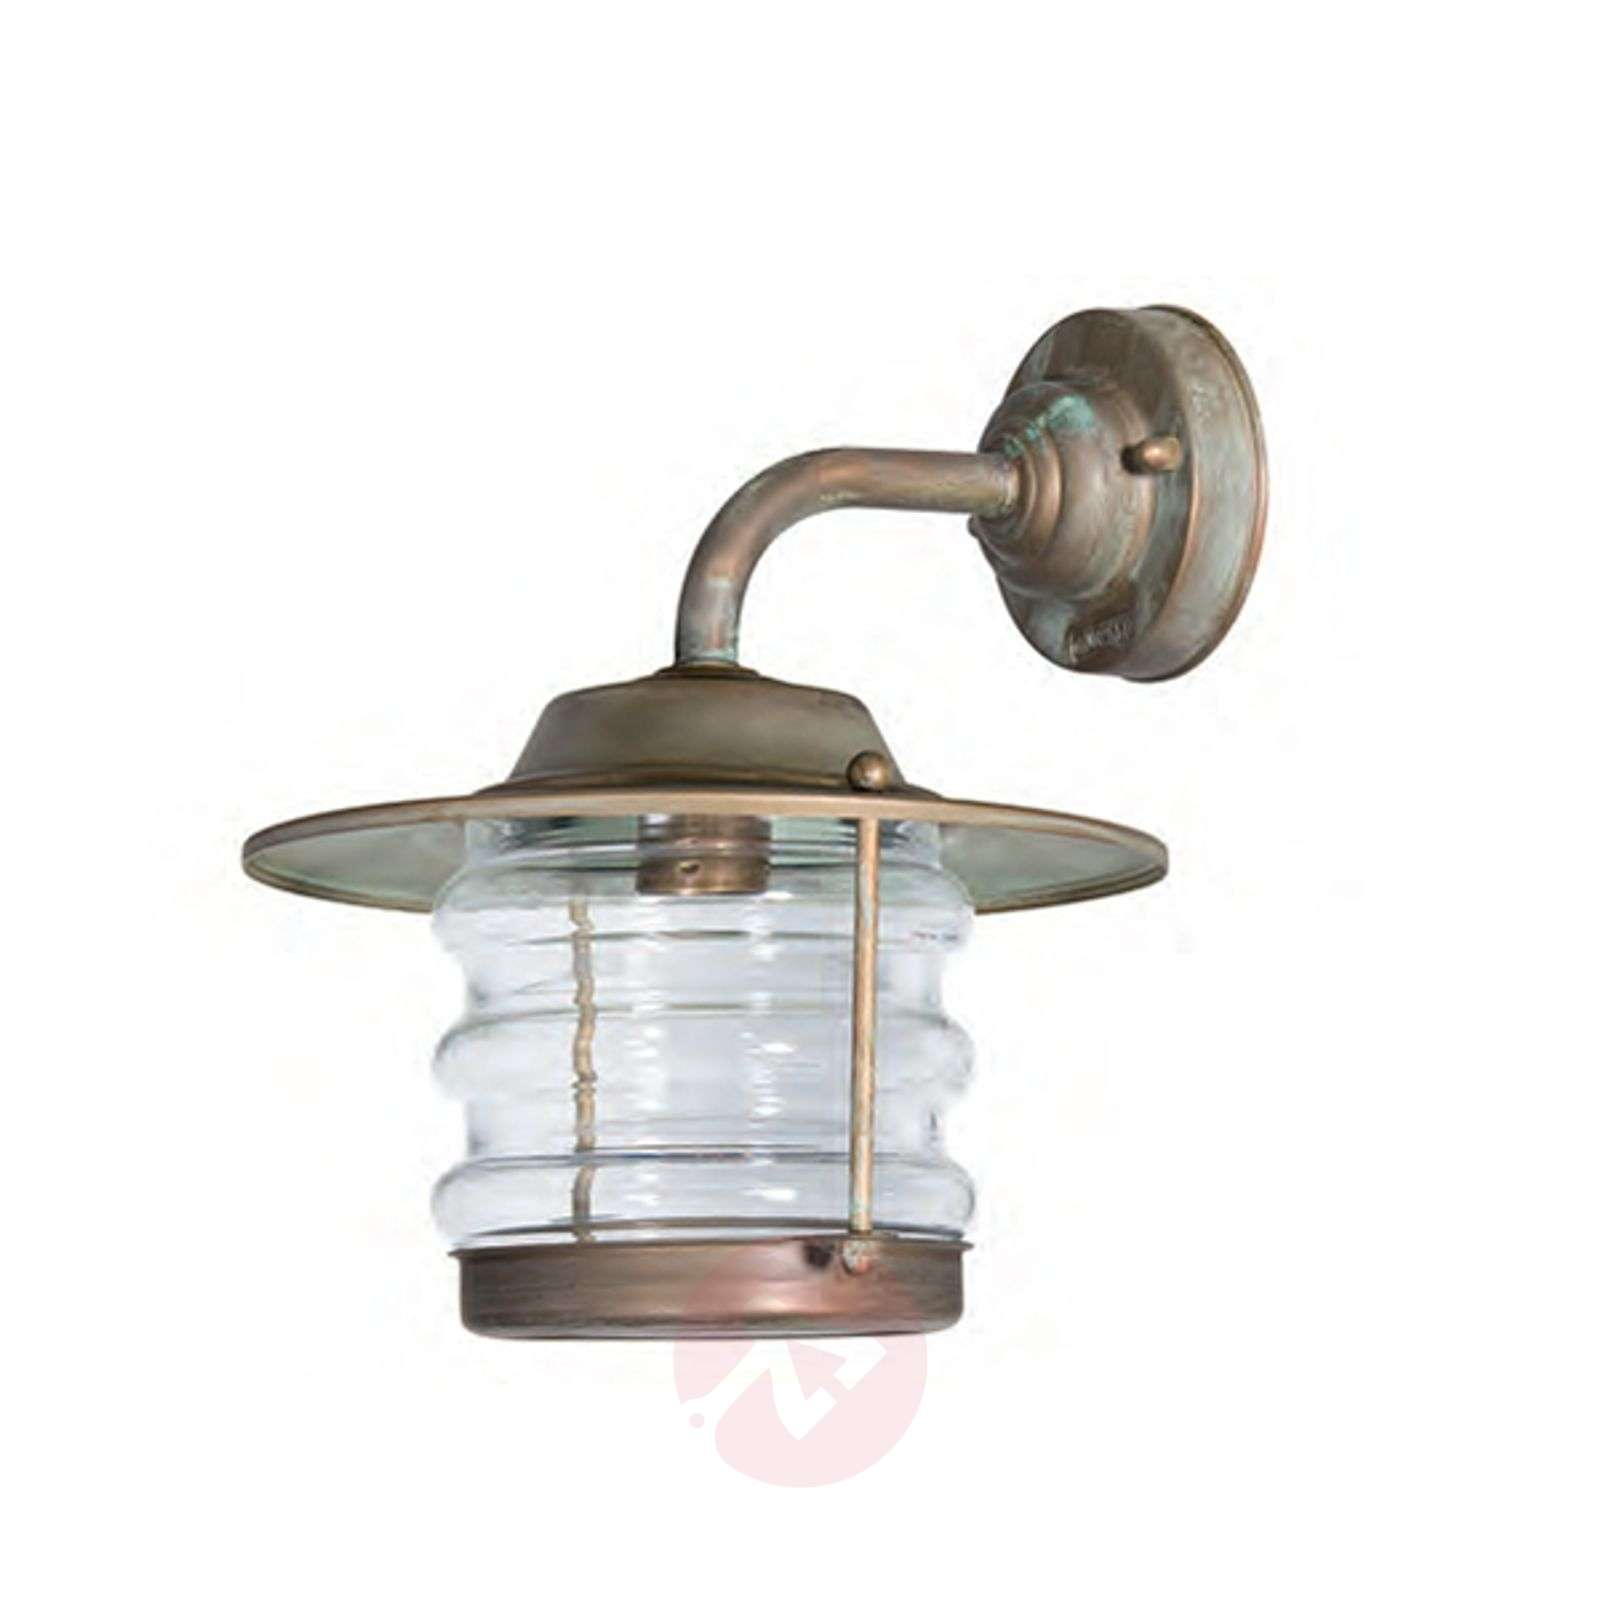 Azuro antique-looking outdoor wall lamp-6515365-01